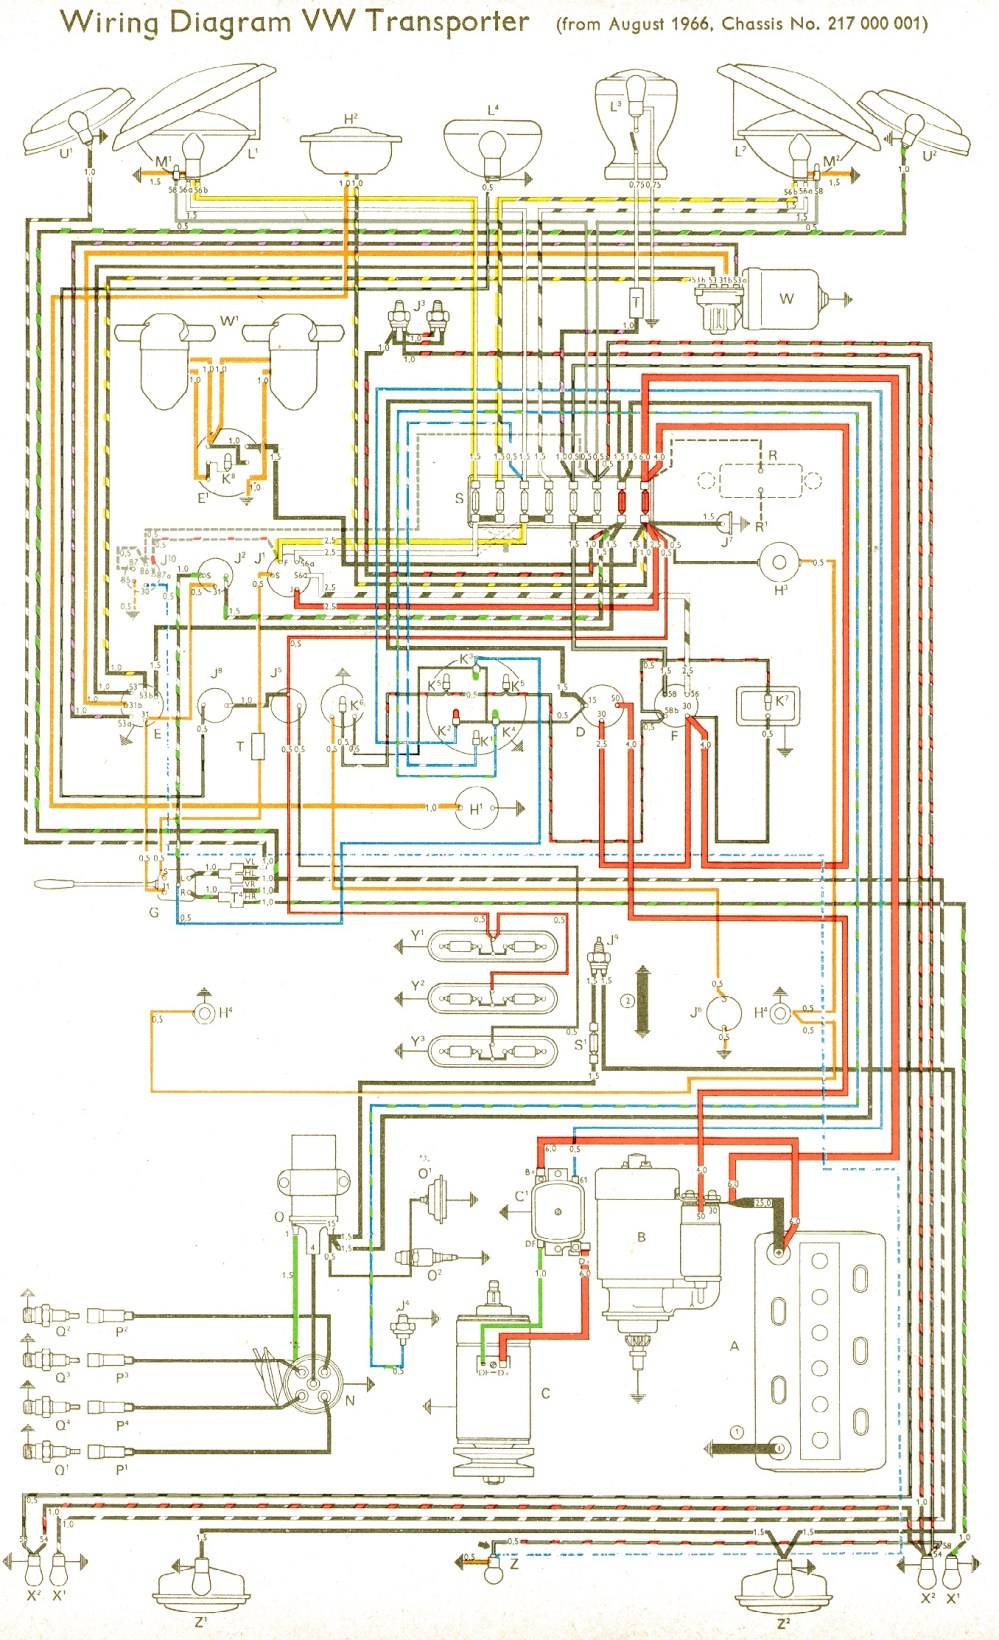 medium resolution of wire diagram for 1972 beetle wiring diagram used1972 vw wiring diagram wiring diagram paper wire diagram